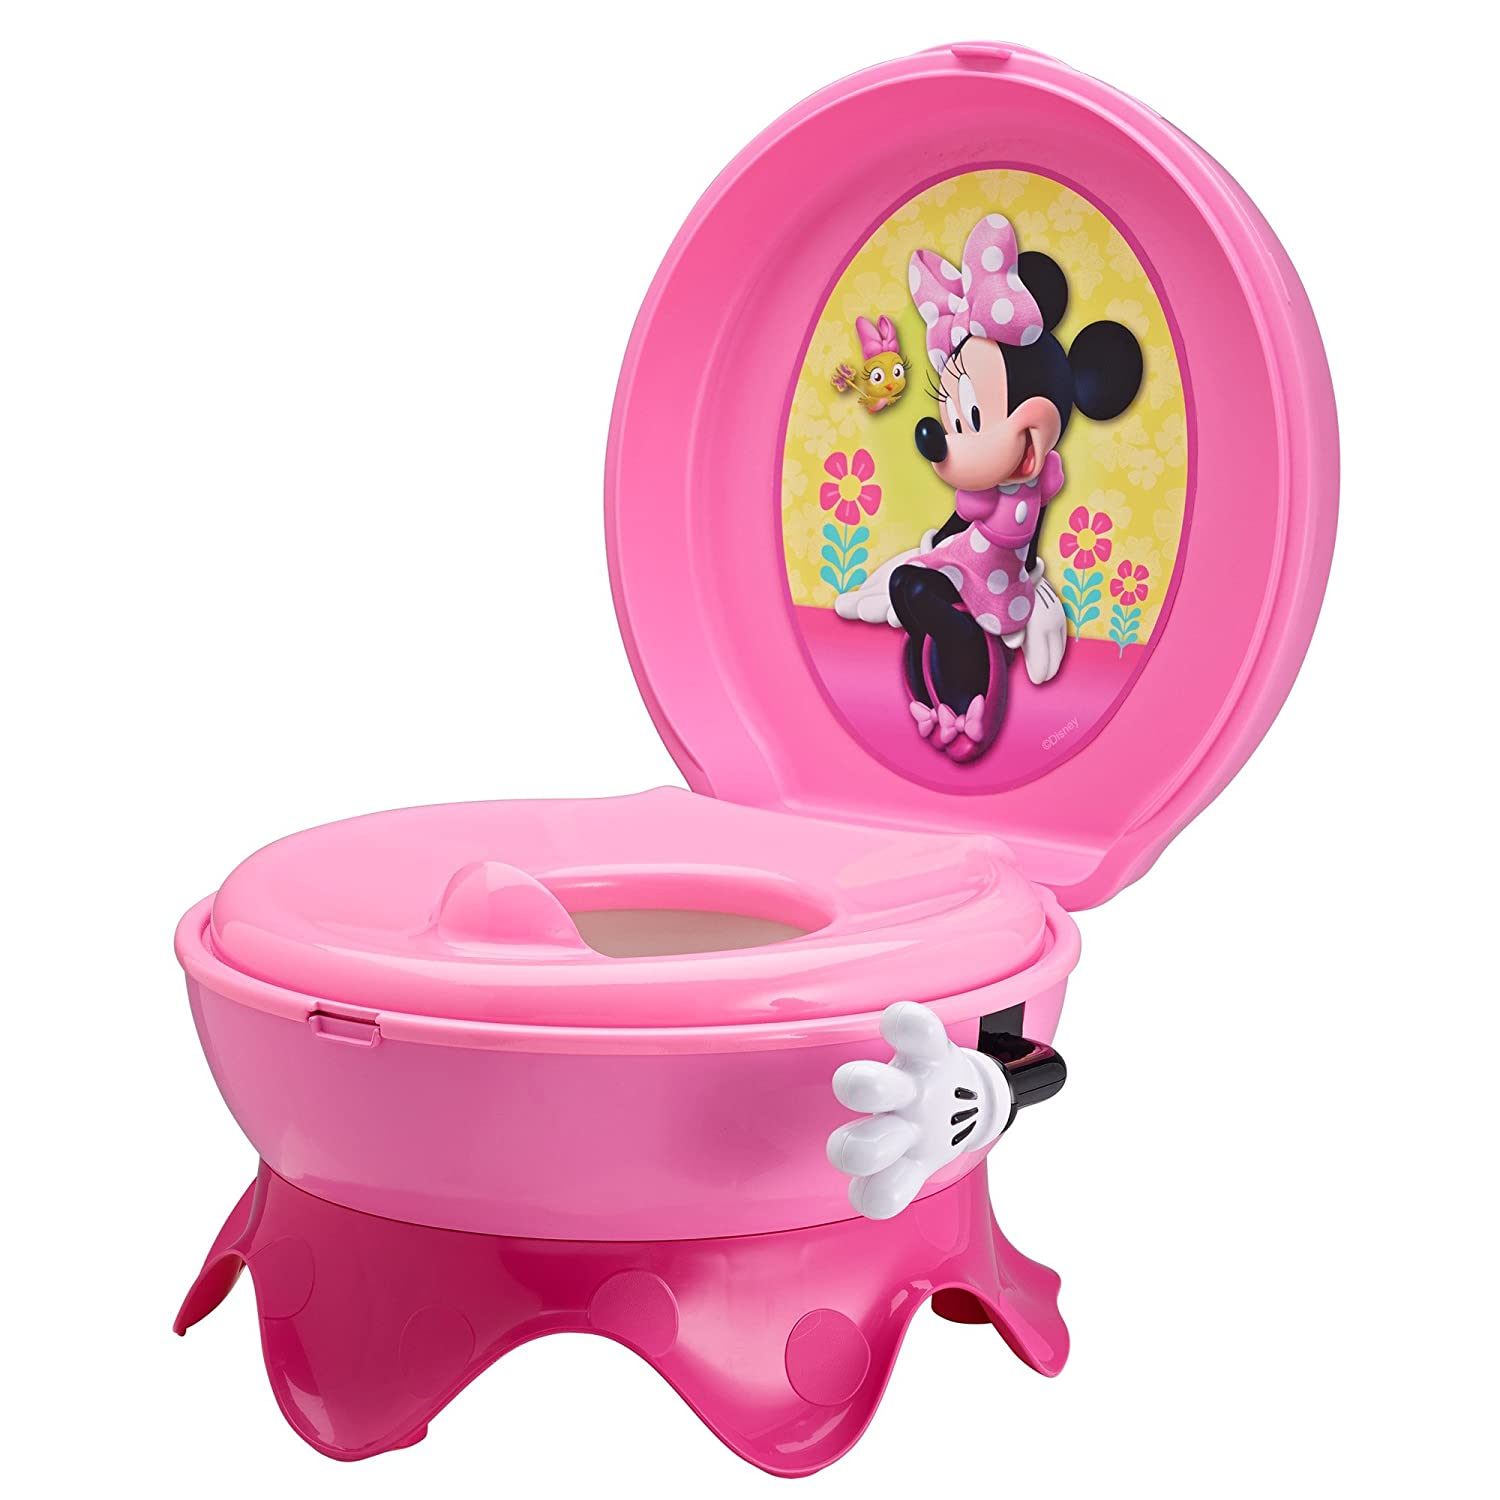 Minnie Mouse Toys For Toddlers : These minnie mouse toys for girls are the best